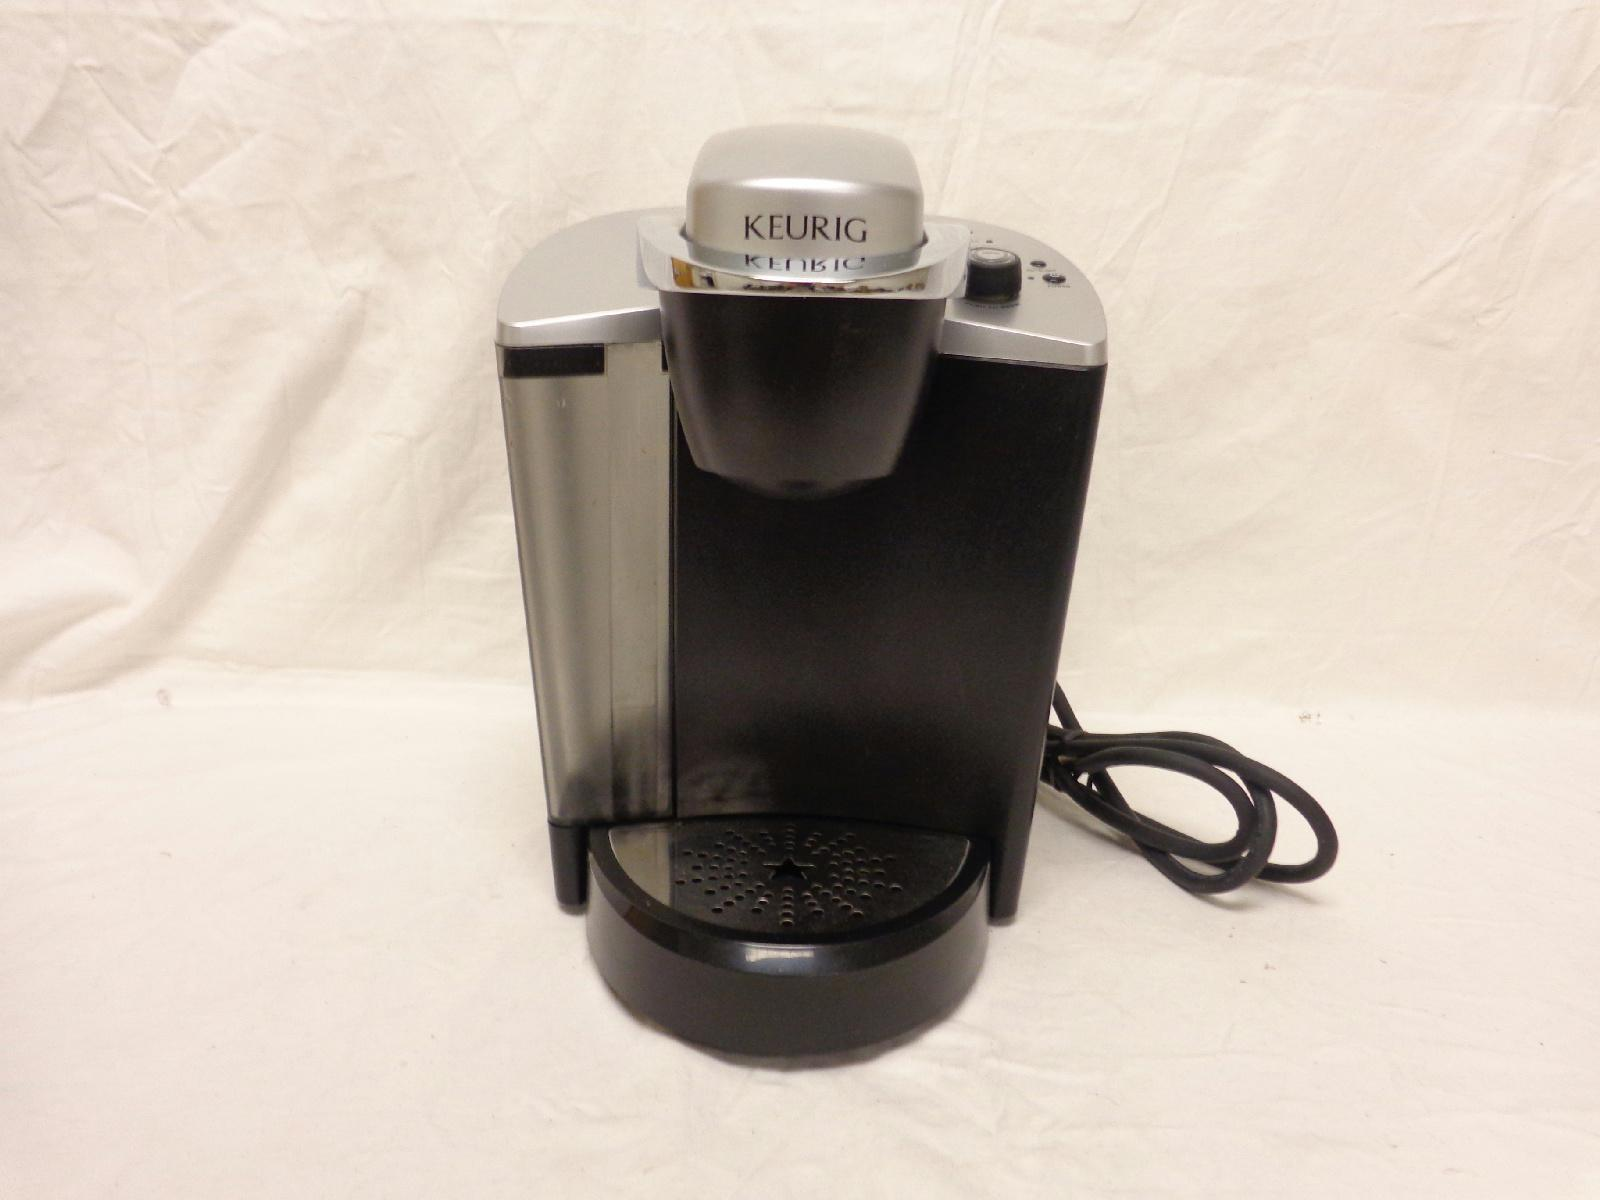 keurig b145 officepro coffee maker gourmet single cup brewing system